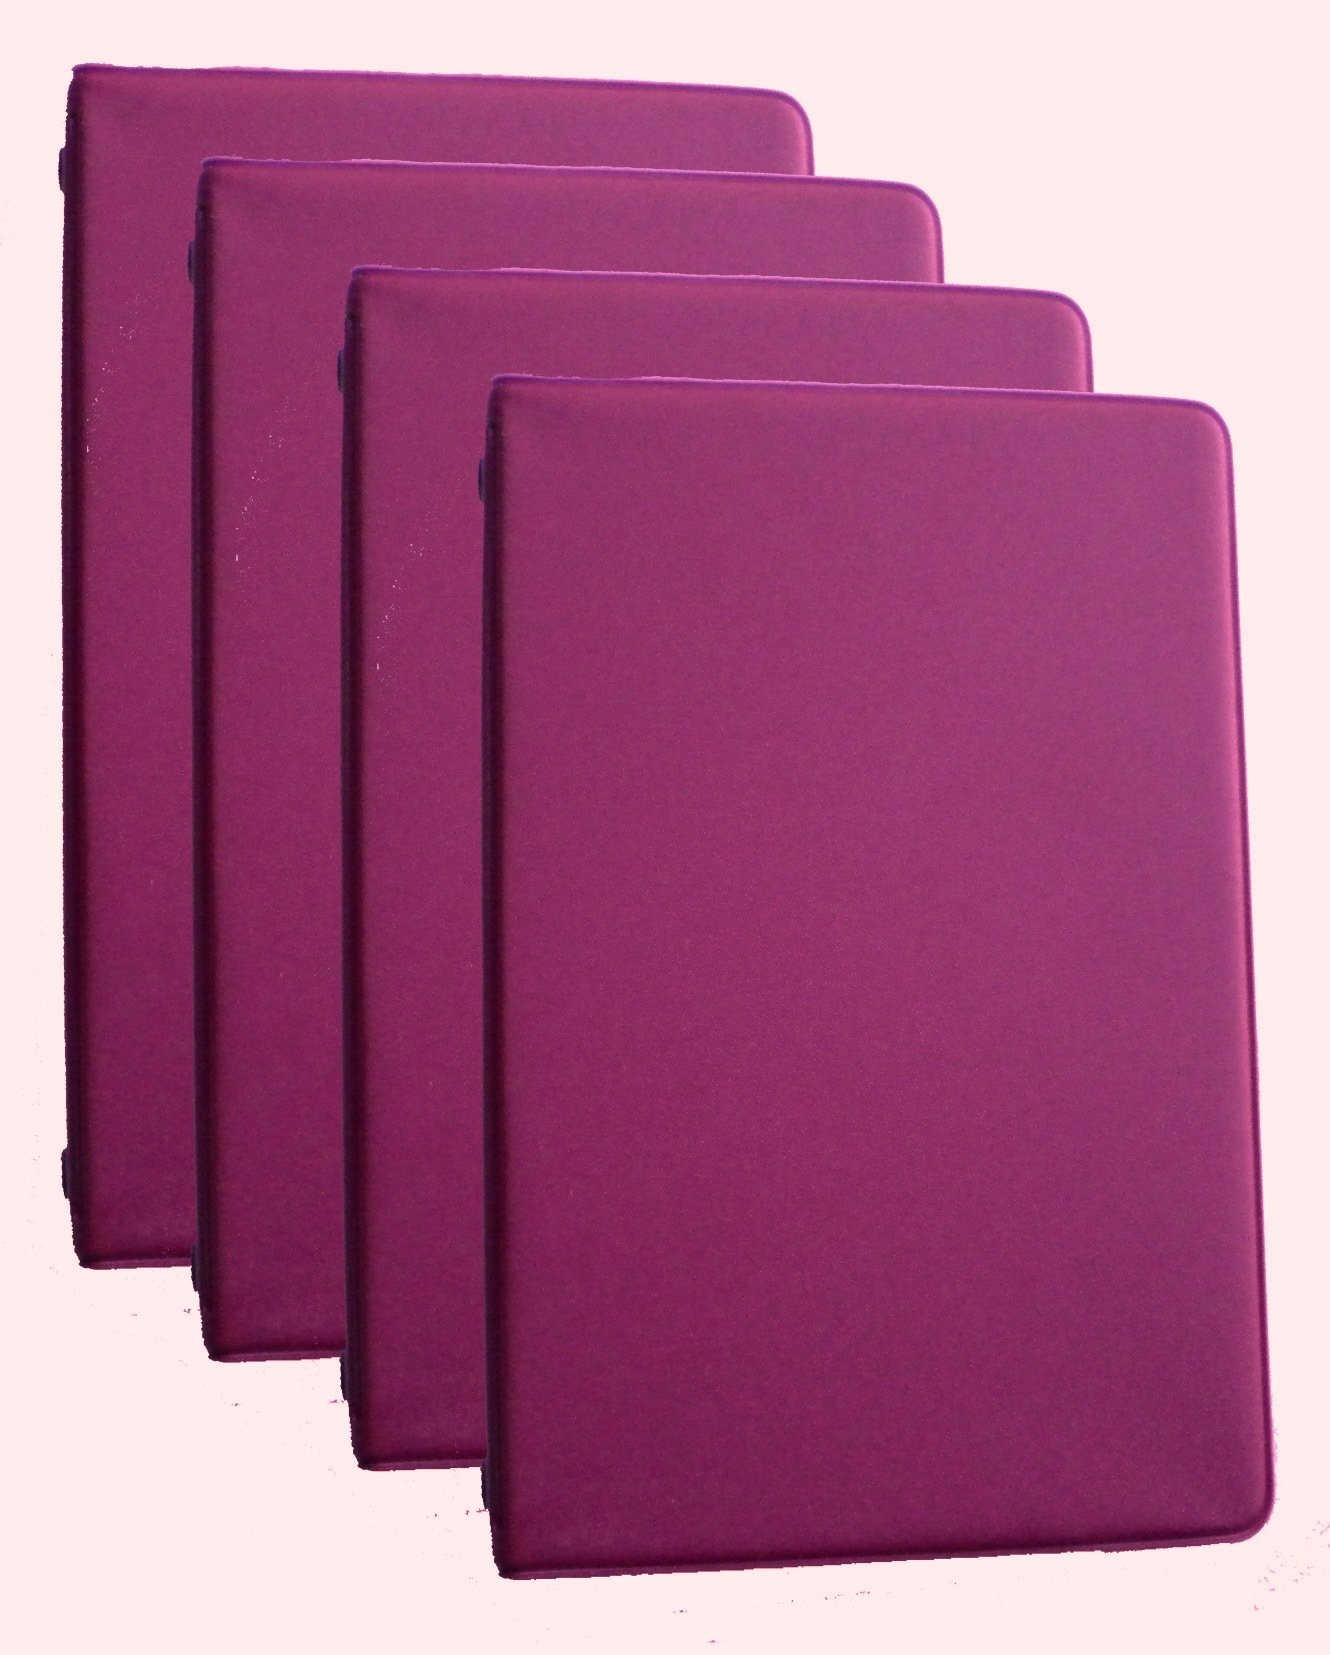 Mead 46034-BY Mini 6-Ring Burgundy Memo Books with 6 3/4 x 3 3/4-inch Lined Paper, 4-PACK